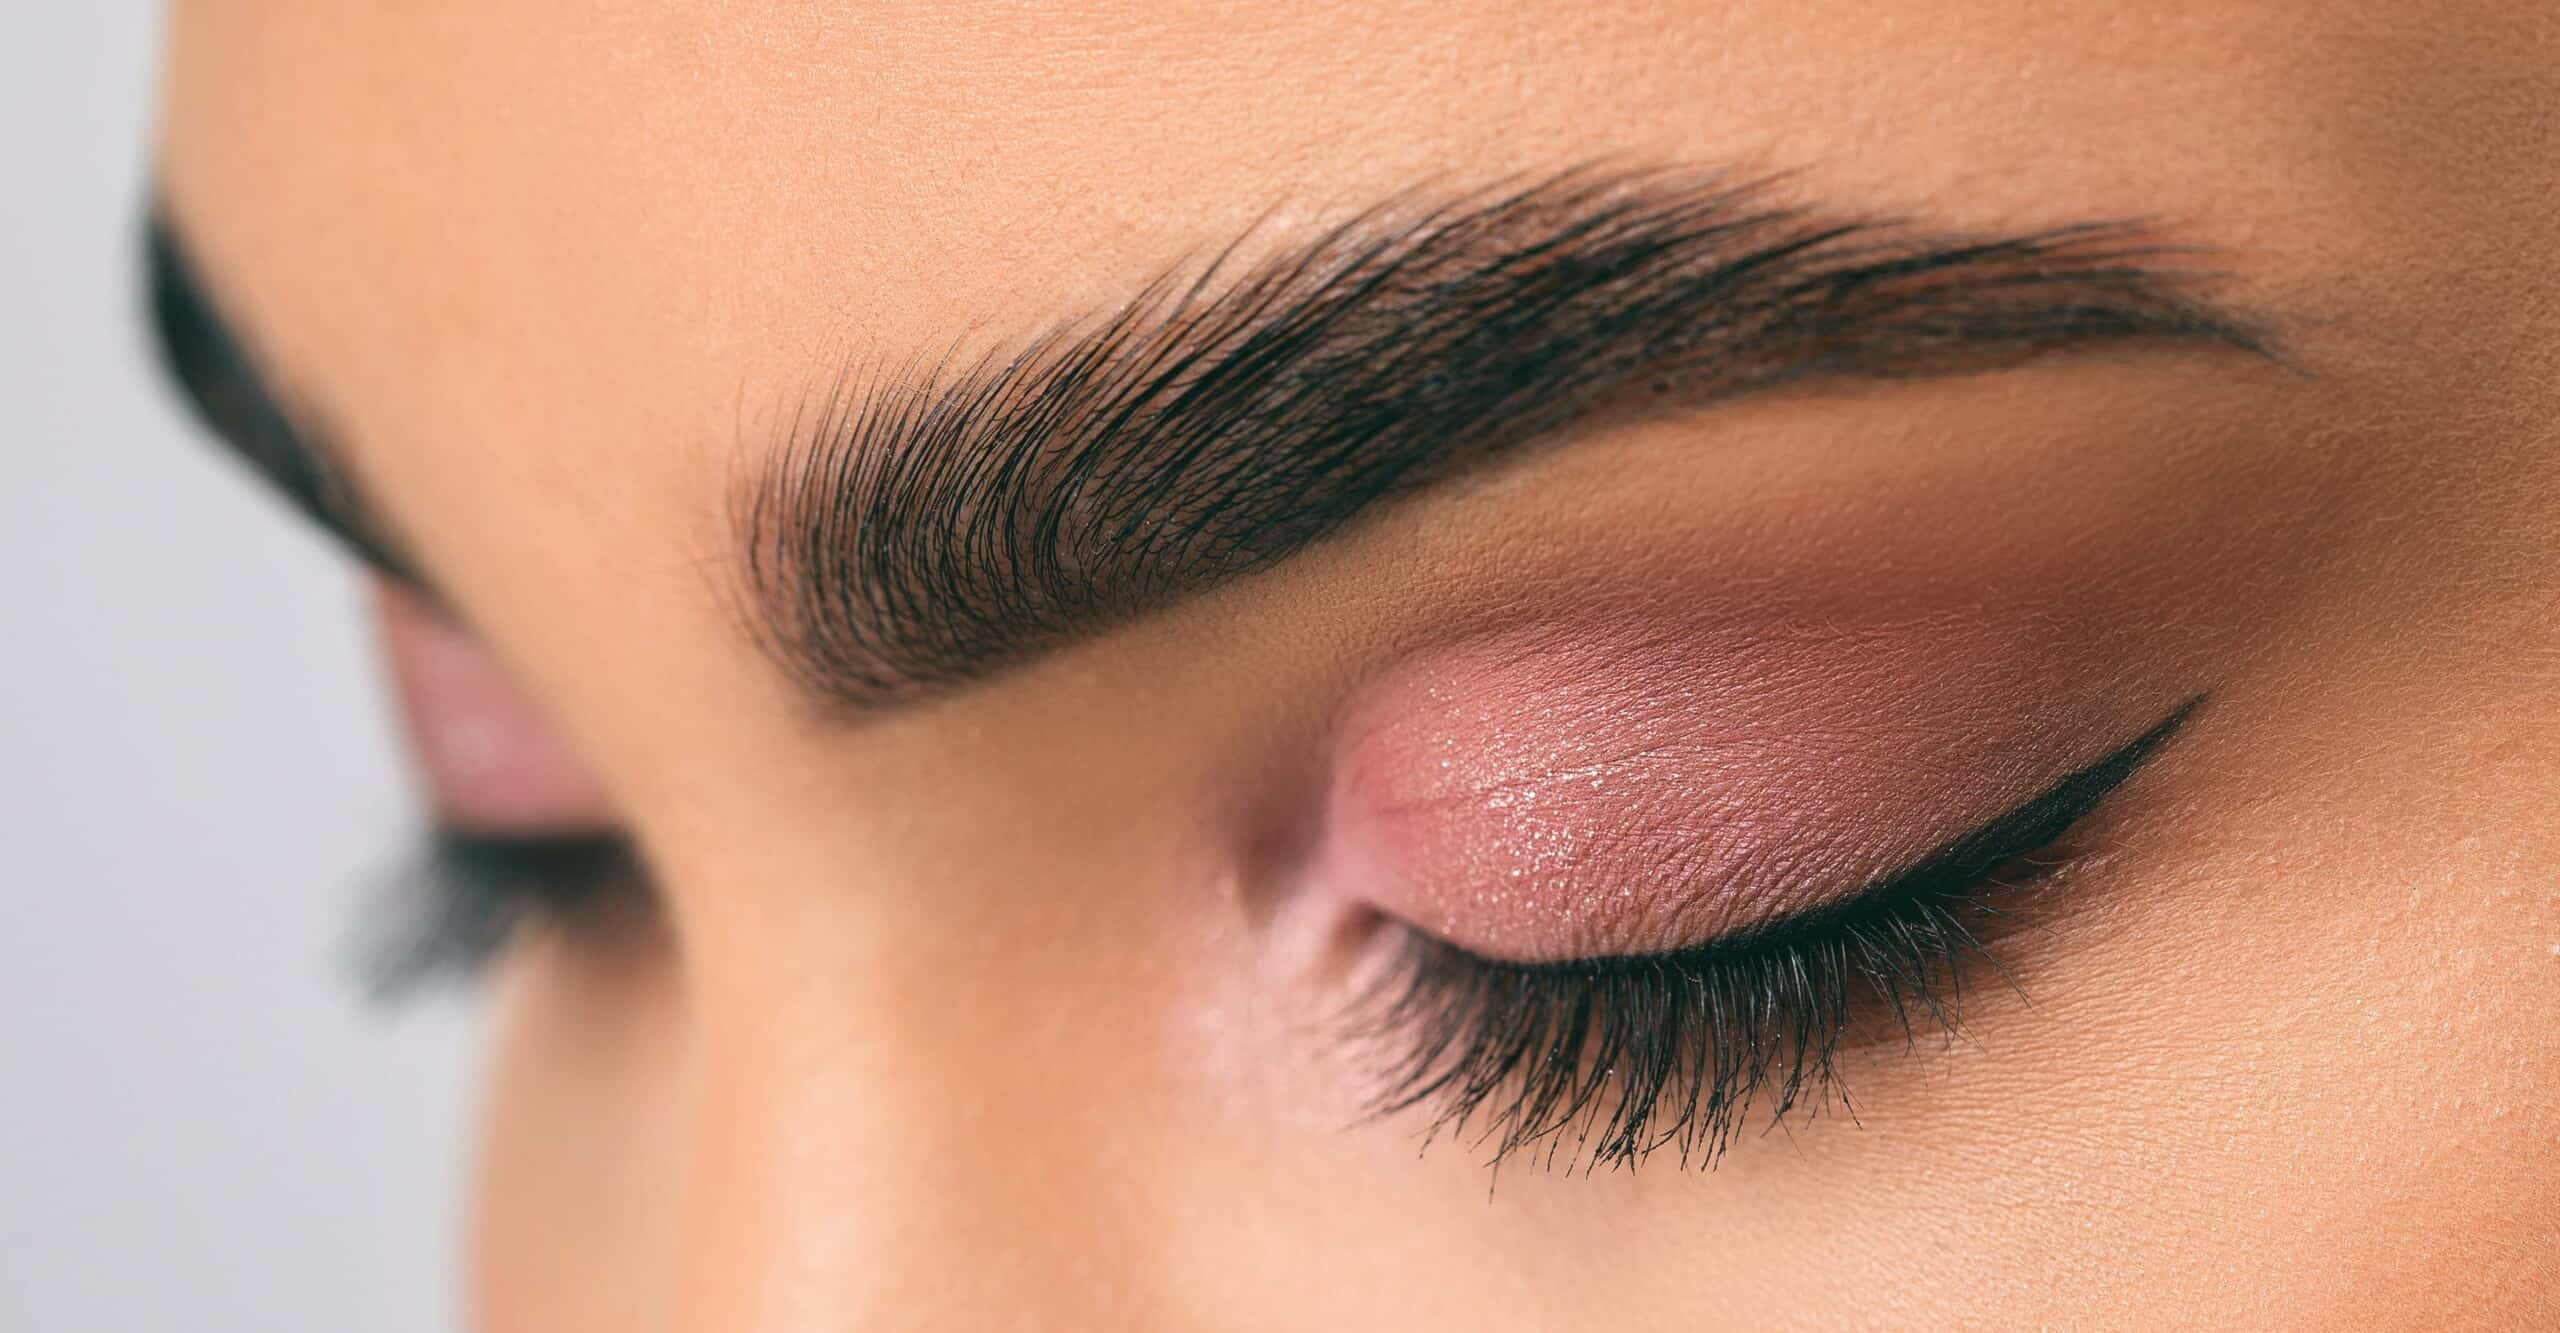 person with shaped brows and eye makeup